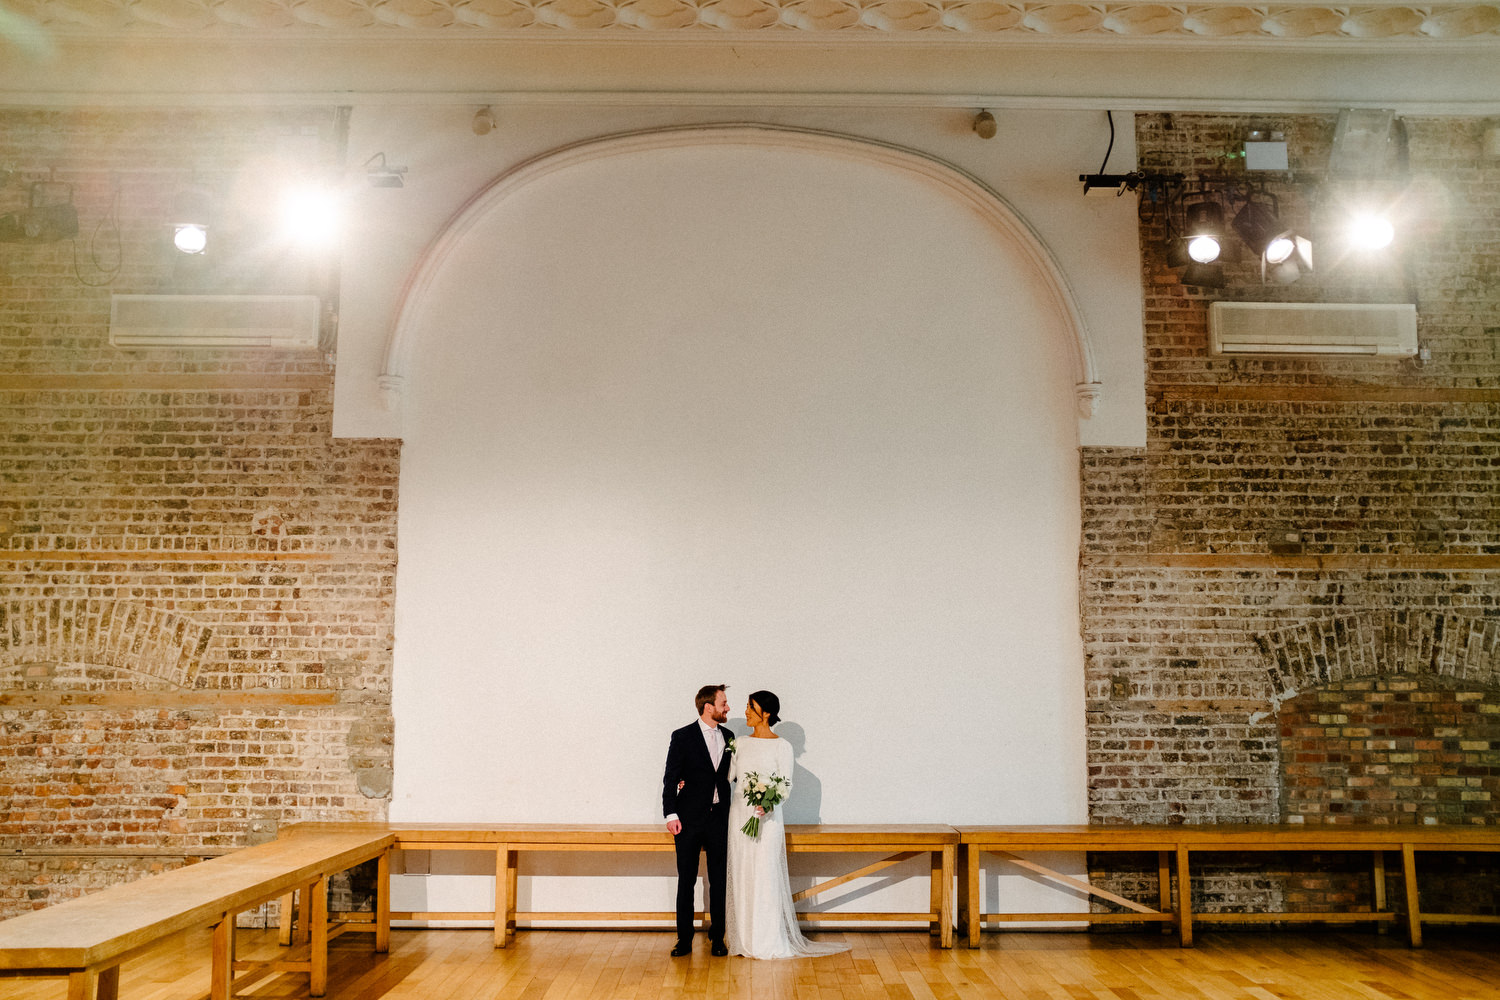 dmp0349_dublin_alley_photography_david_mcclelland_ceremony_humanist_documentary_theatre_smock_wedding_photographer